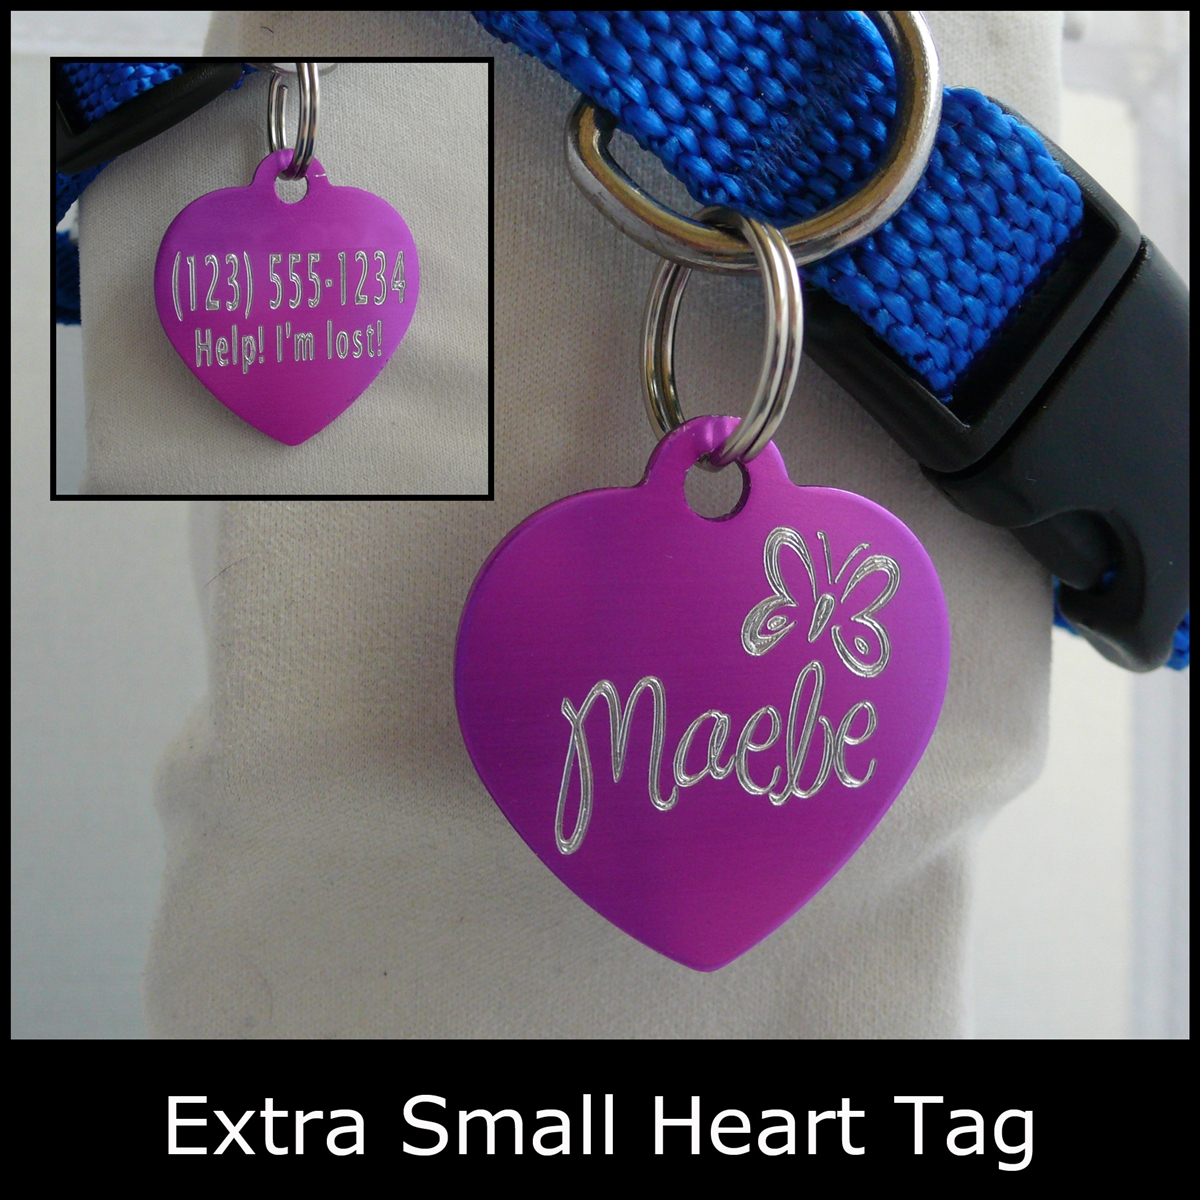 Engraved Anodized Aluminum, Extra Small Heart-Shaped Pet ID Tag-Quick Order